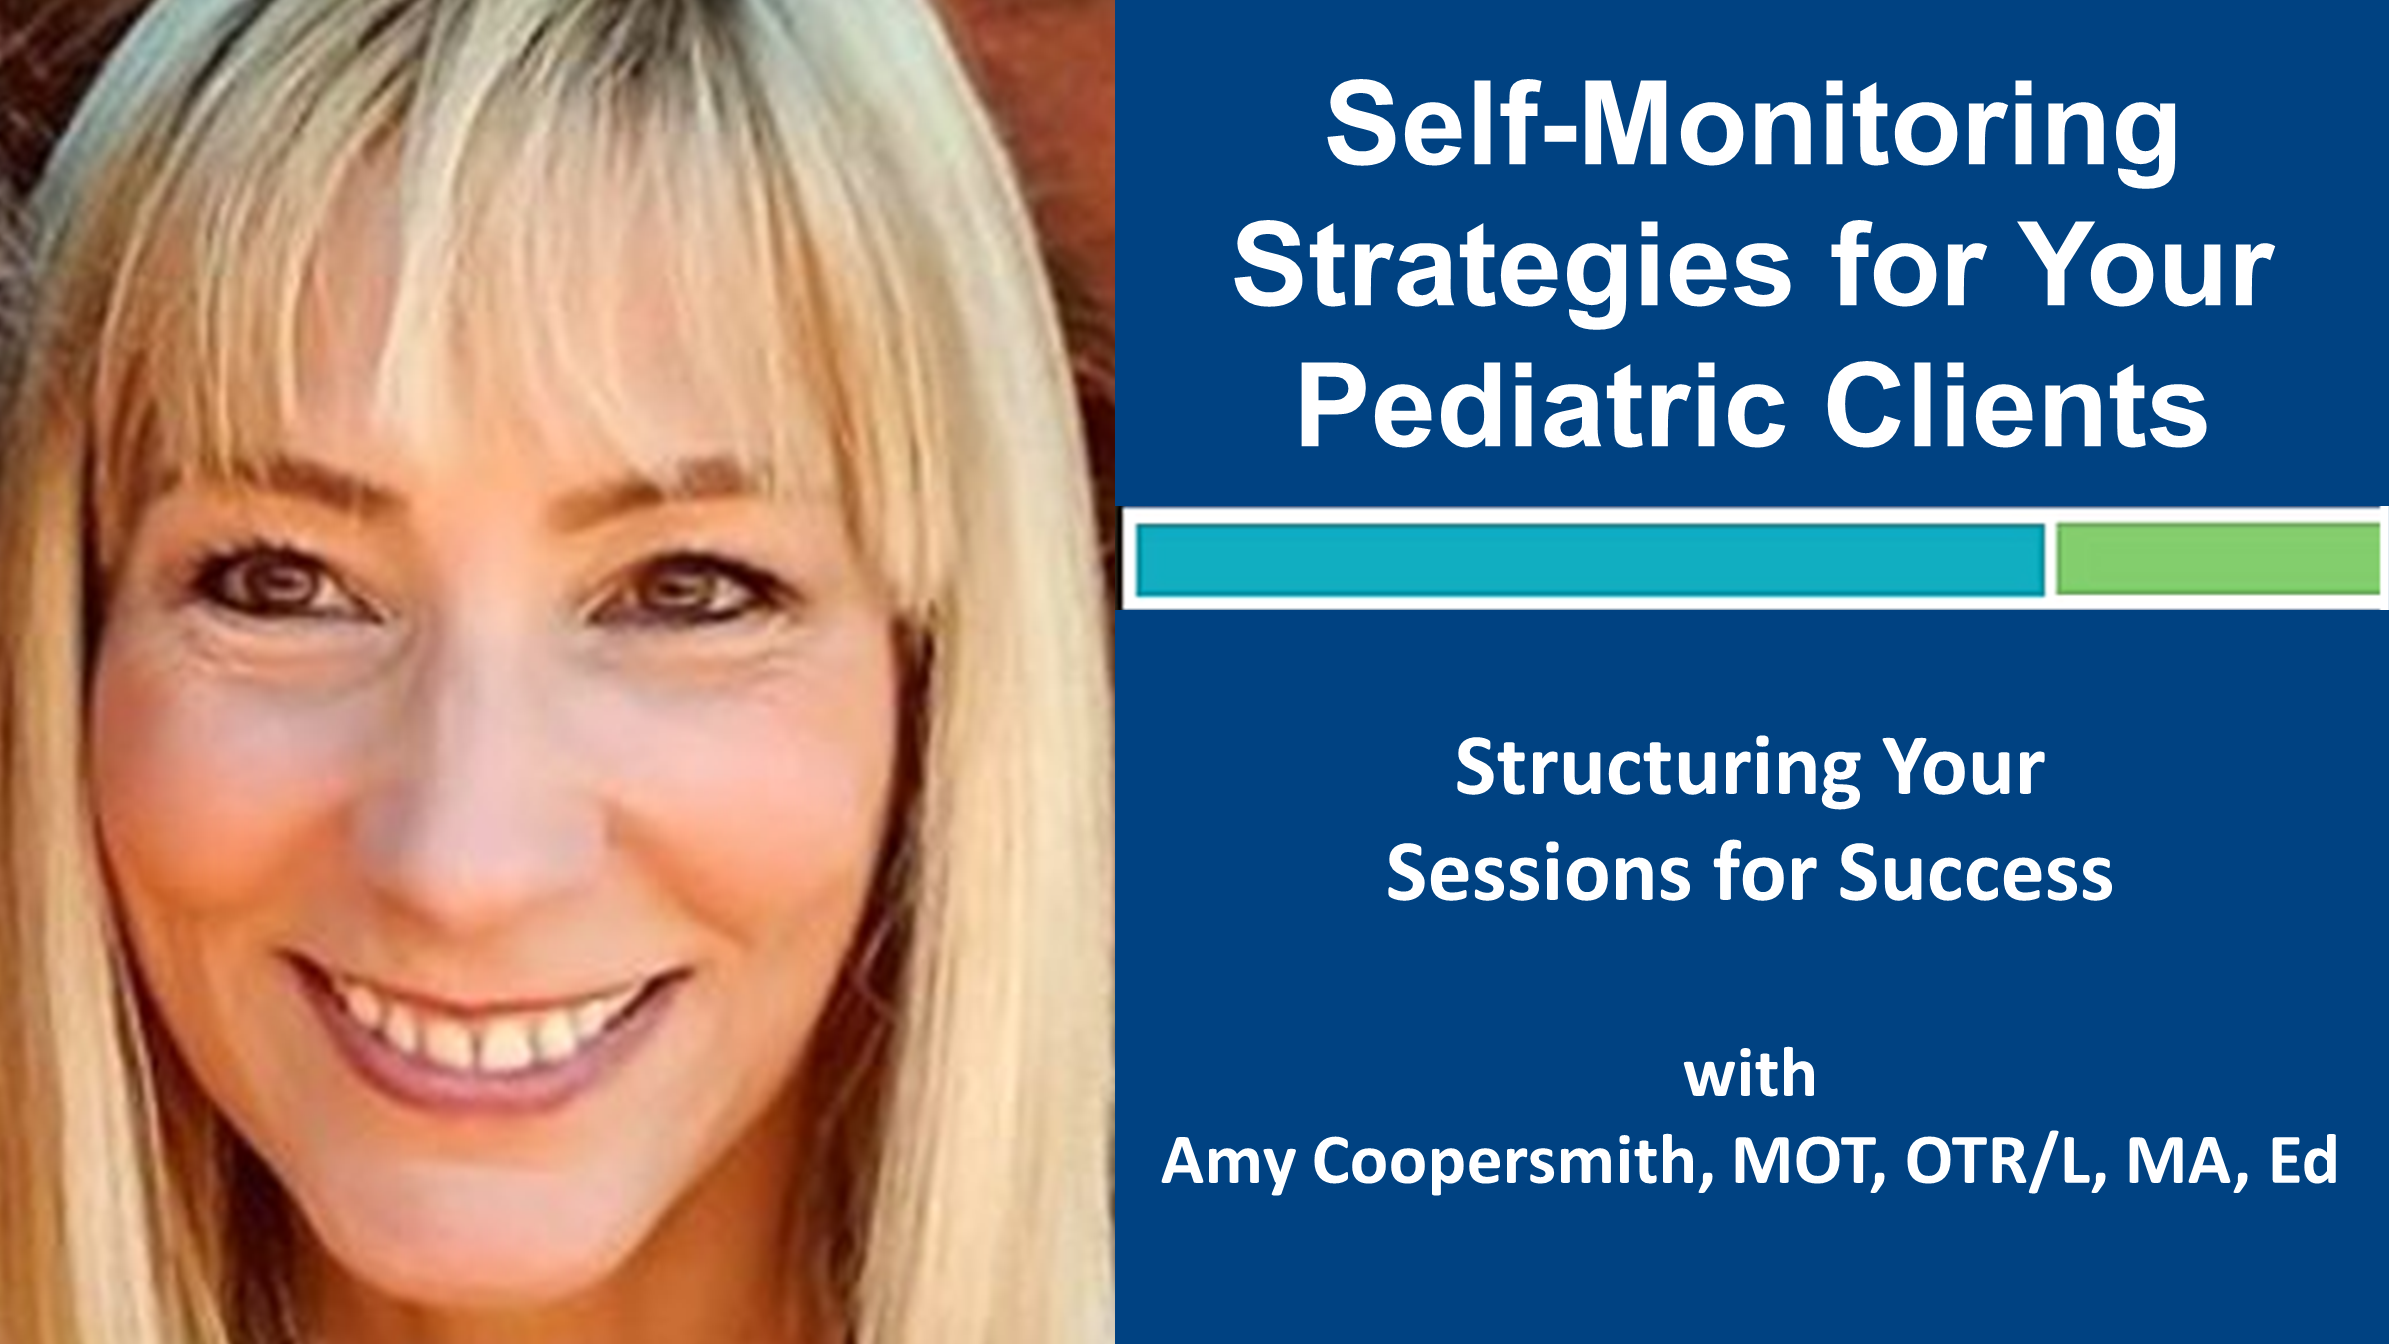 Webinar 6: Self-Monitoring Strategies for Your Pediatric Clients with Amy Coopersmith, MOT, OTR/L, MA, Ed